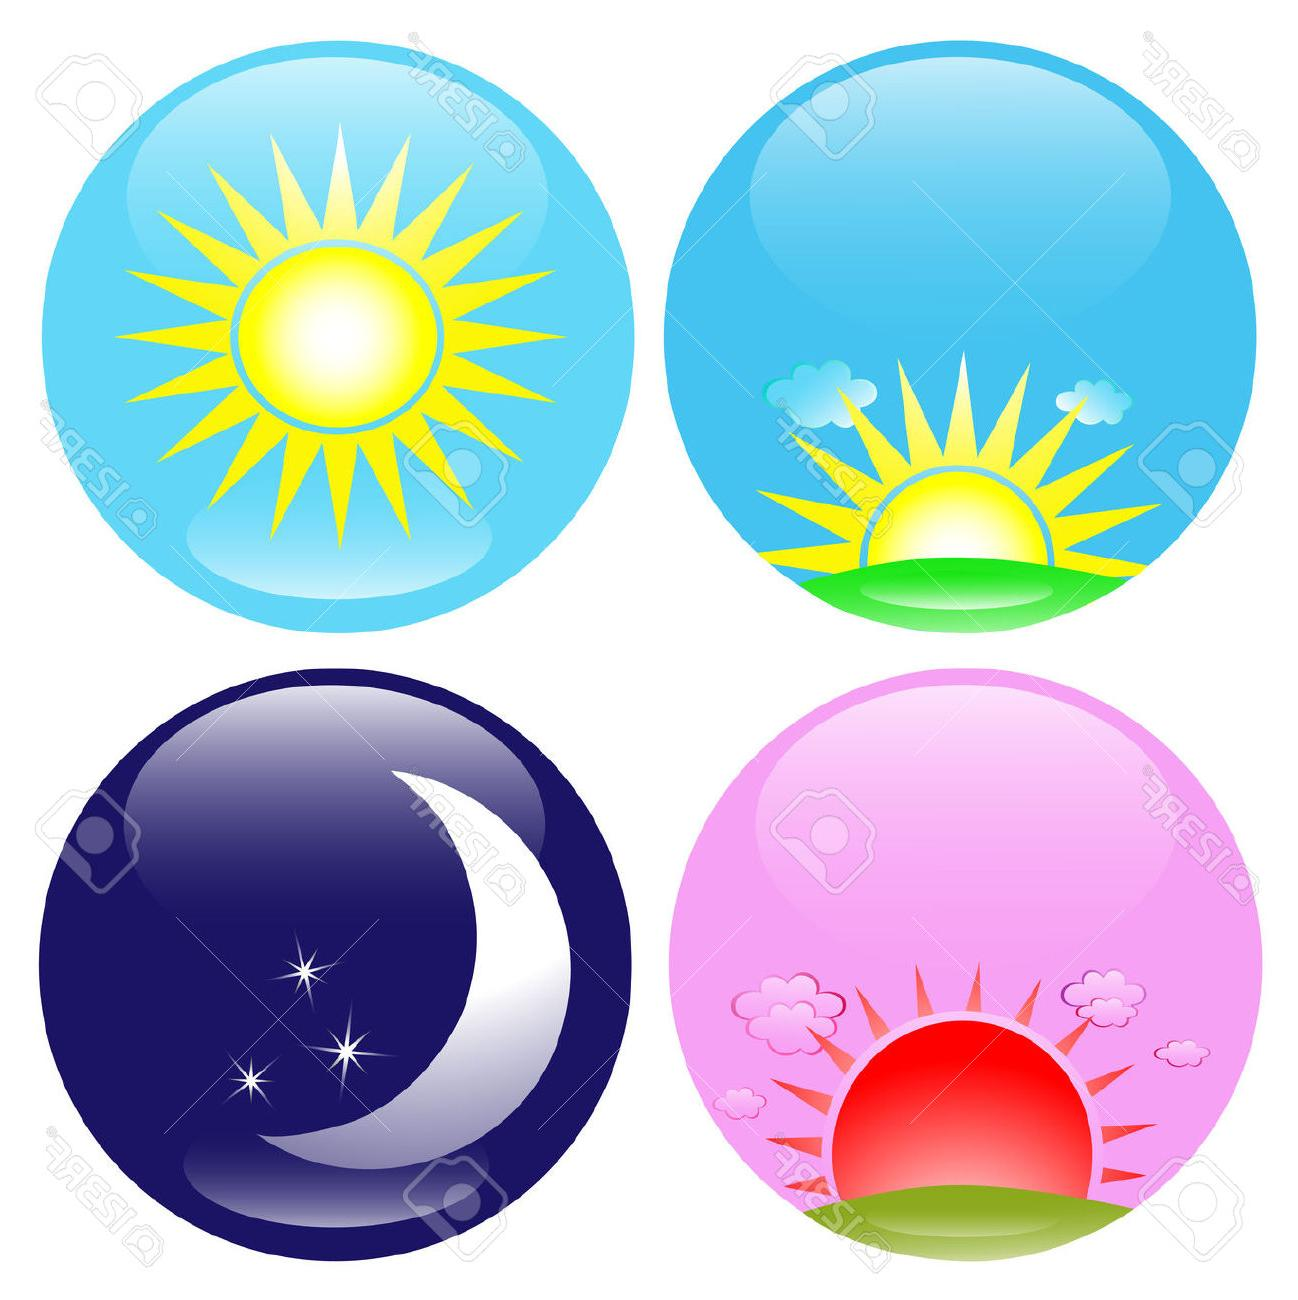 Best HD Clip Art Day And Night Vector Pictures » Free Vector.